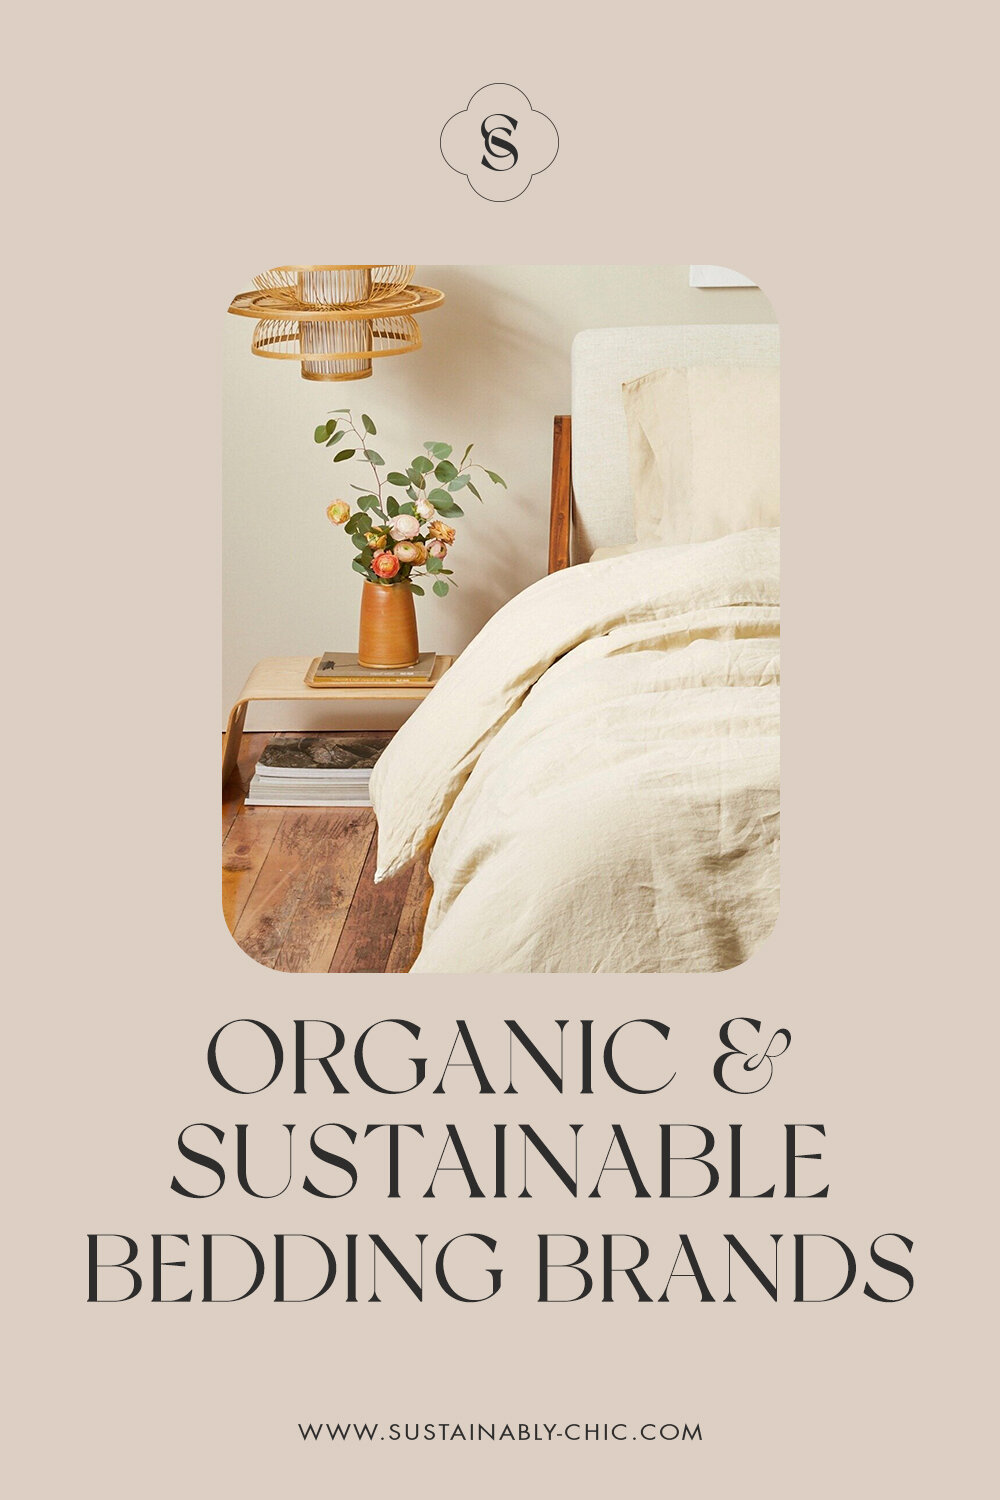 Sustainably Chic | Sustainable Fashion & Lifestyle Blog | The Best Sustainable & Organic Bed Sheets.jpg